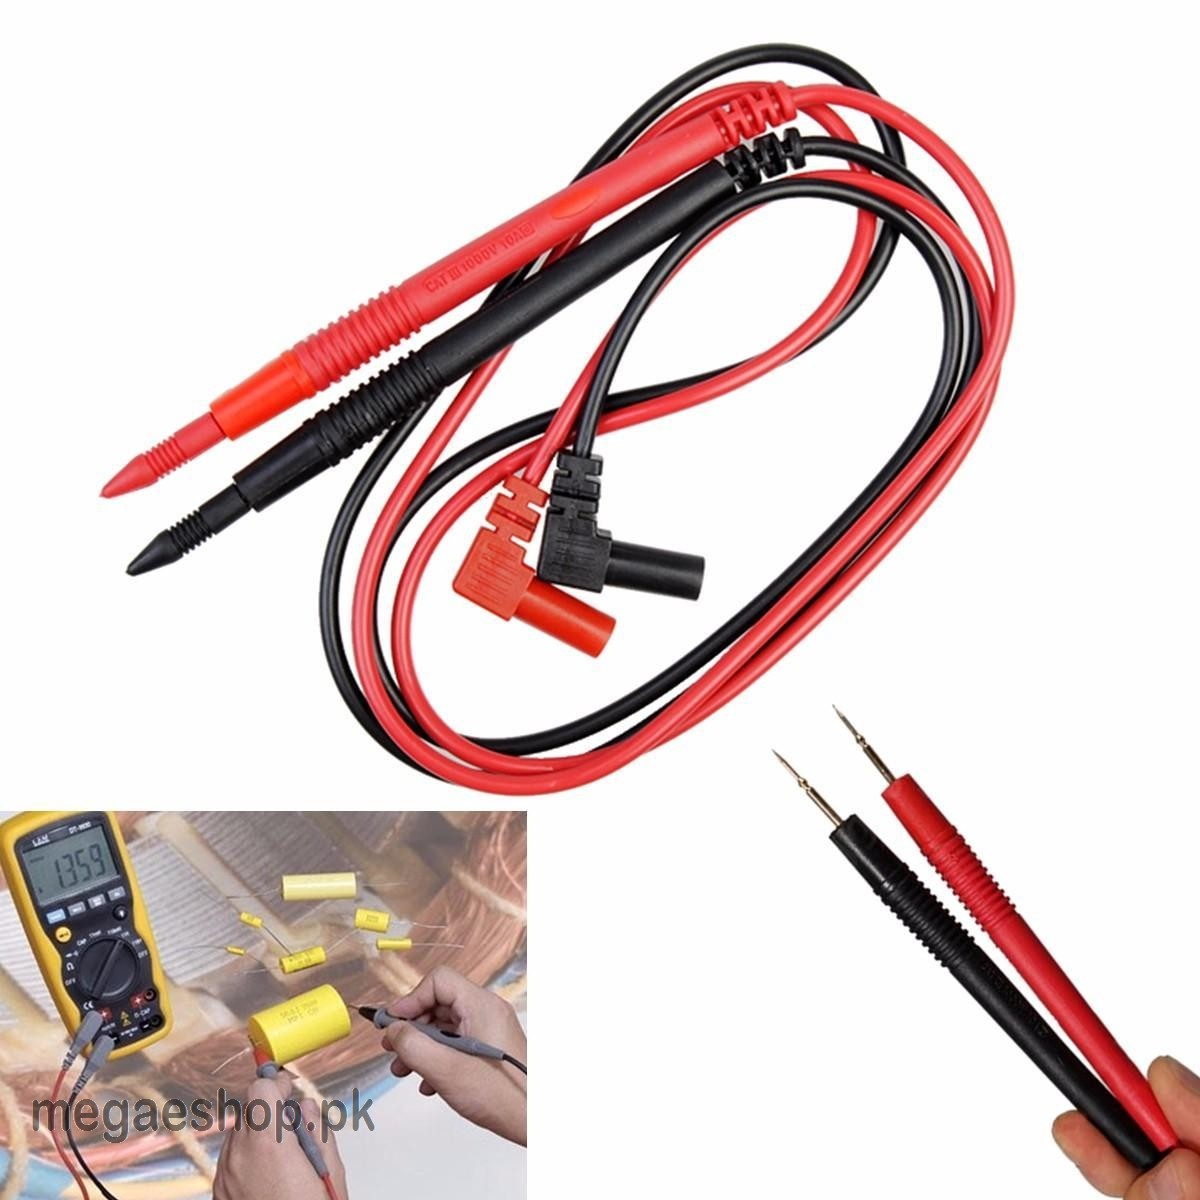 10A 90cm Probe Test Leads Pin For Digital Multimeter Meter